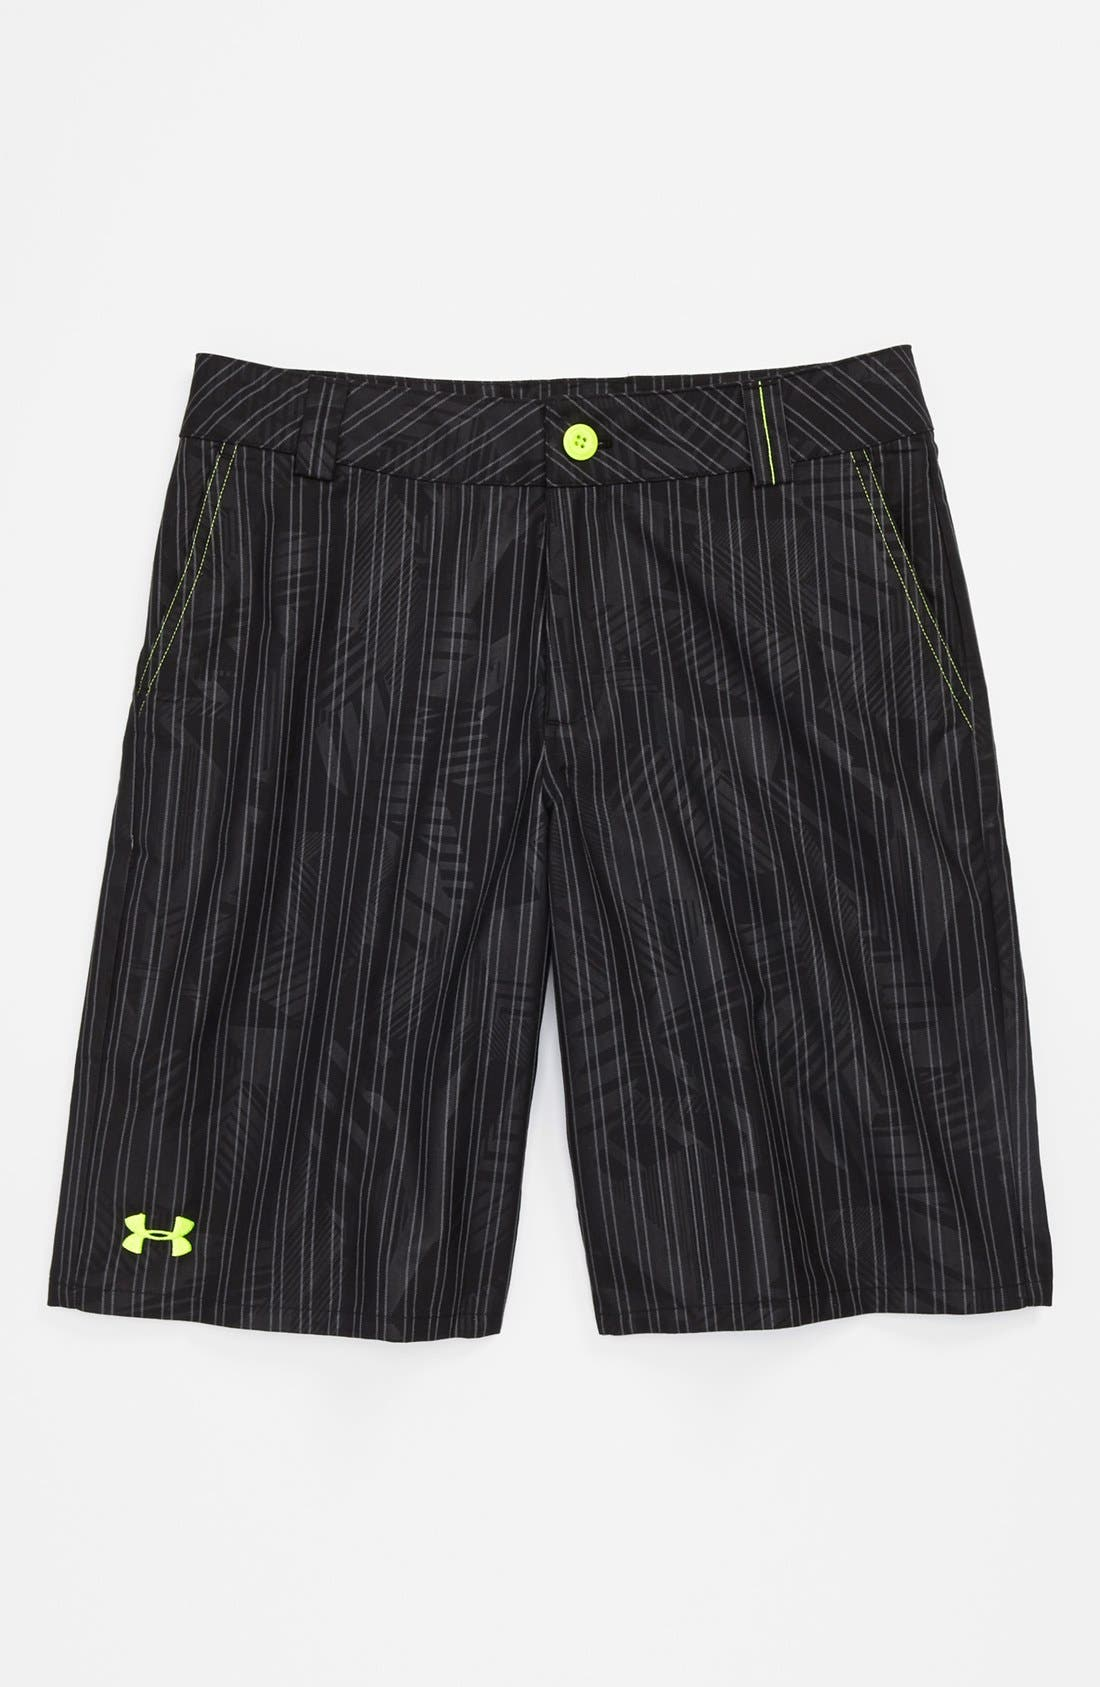 Alternate Image 1 Selected - Under Armour 'Forged' Shorts (Big Boys)